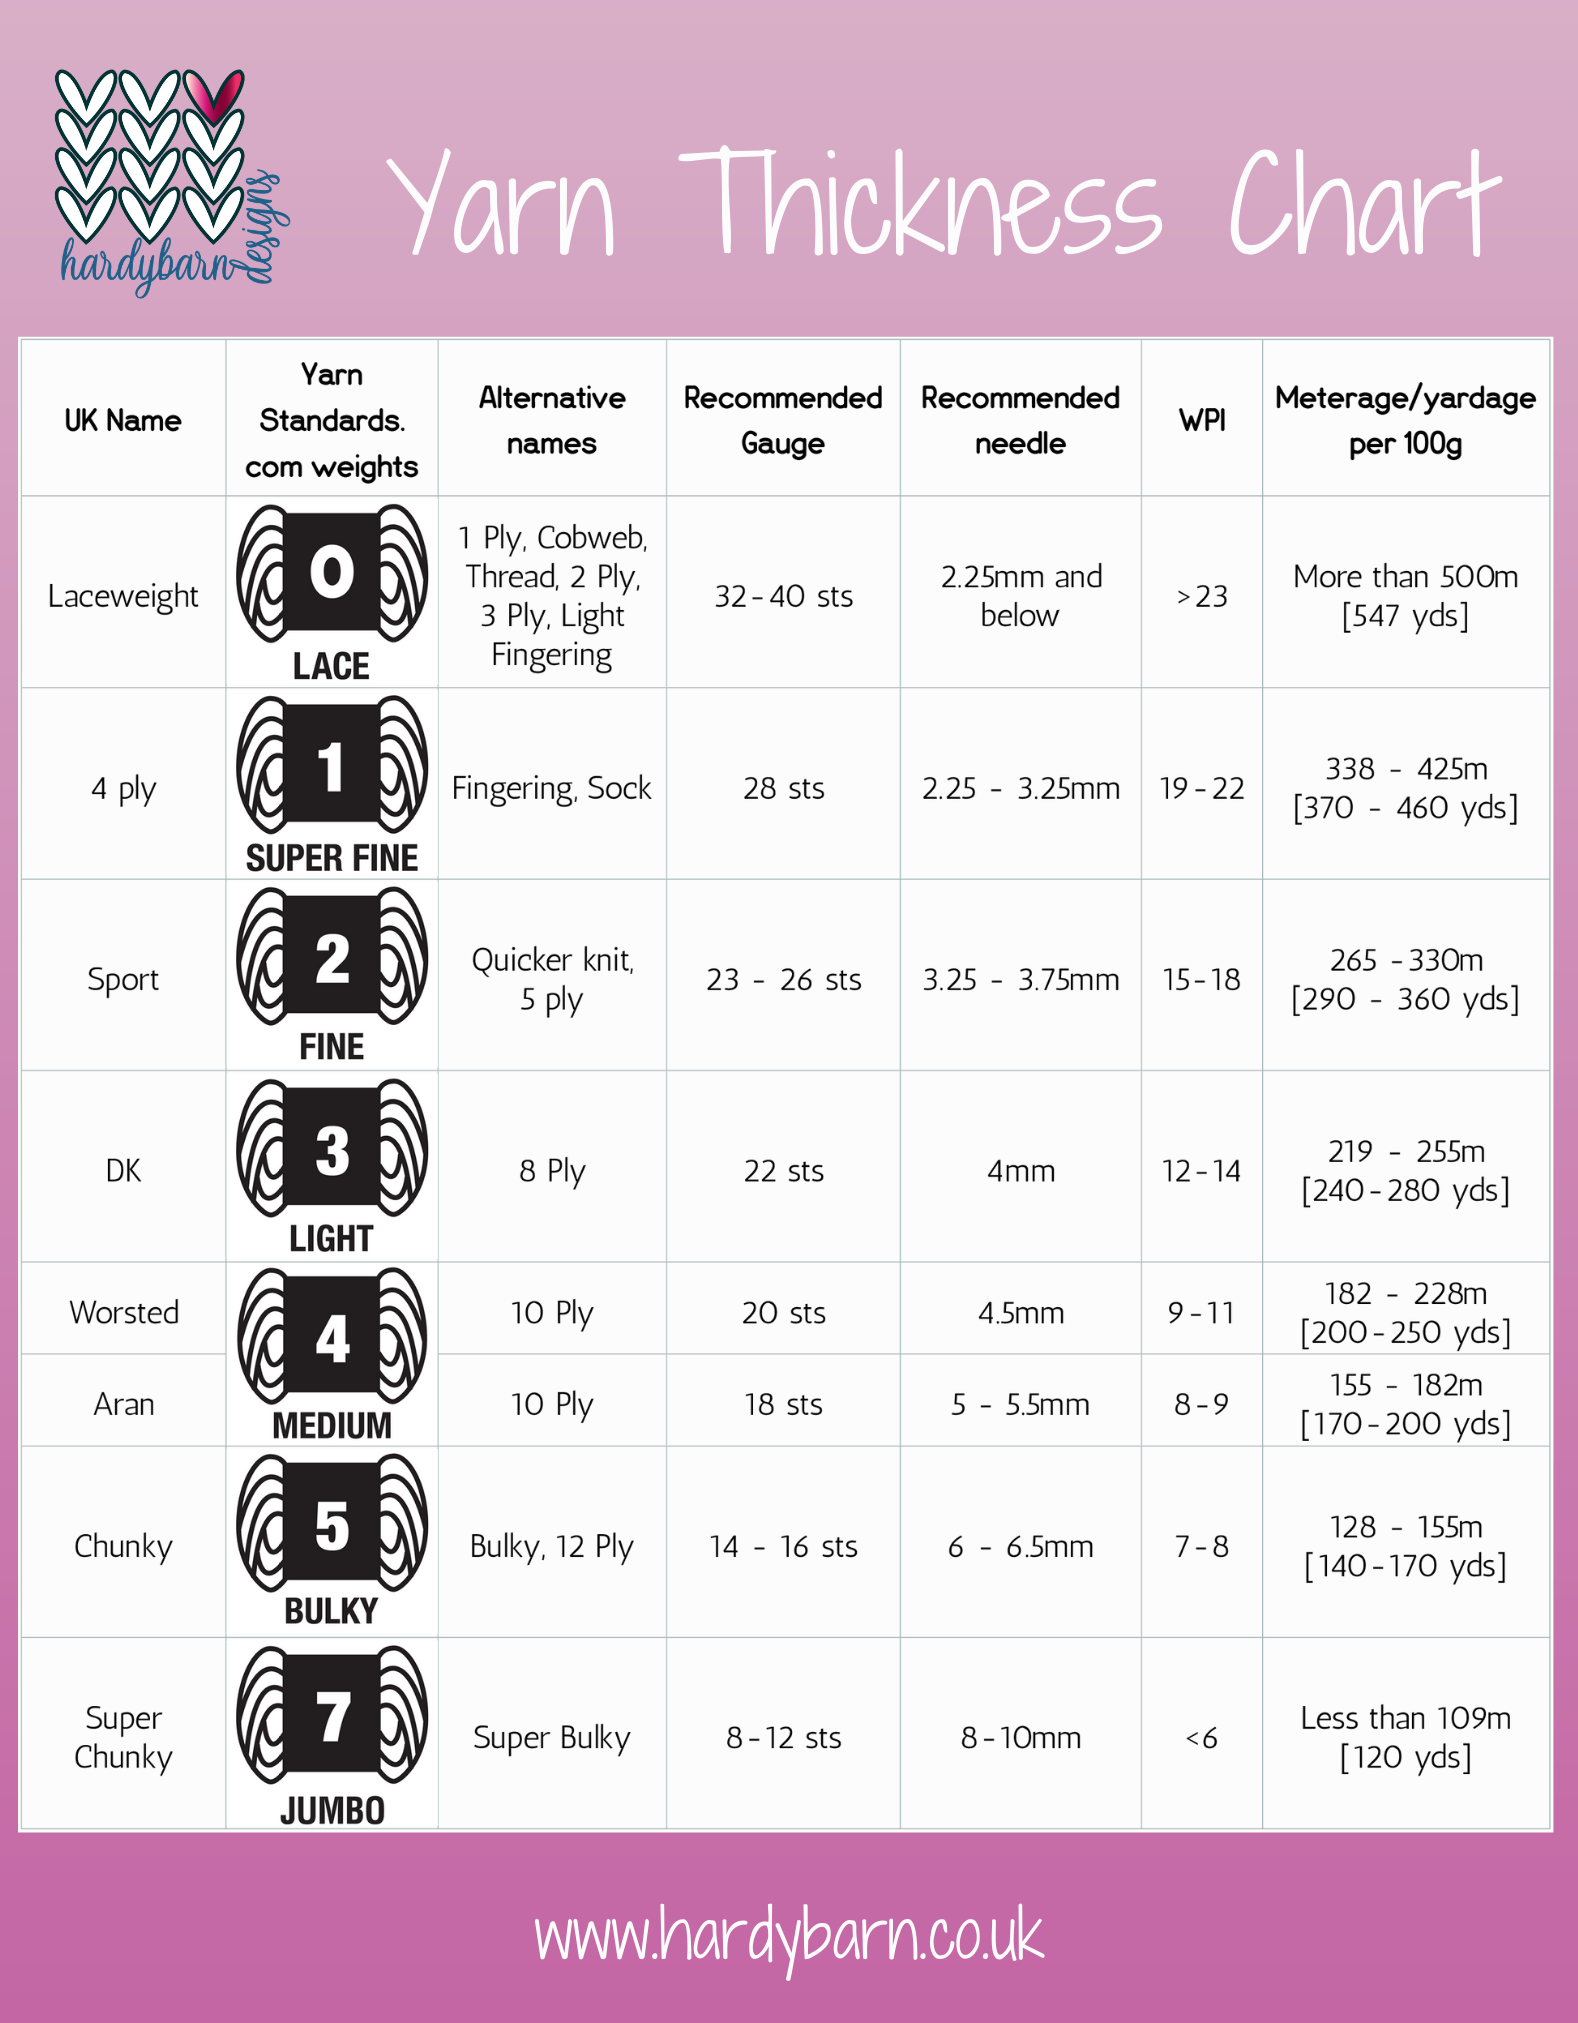 Table including all the information for different yarn thicknesses